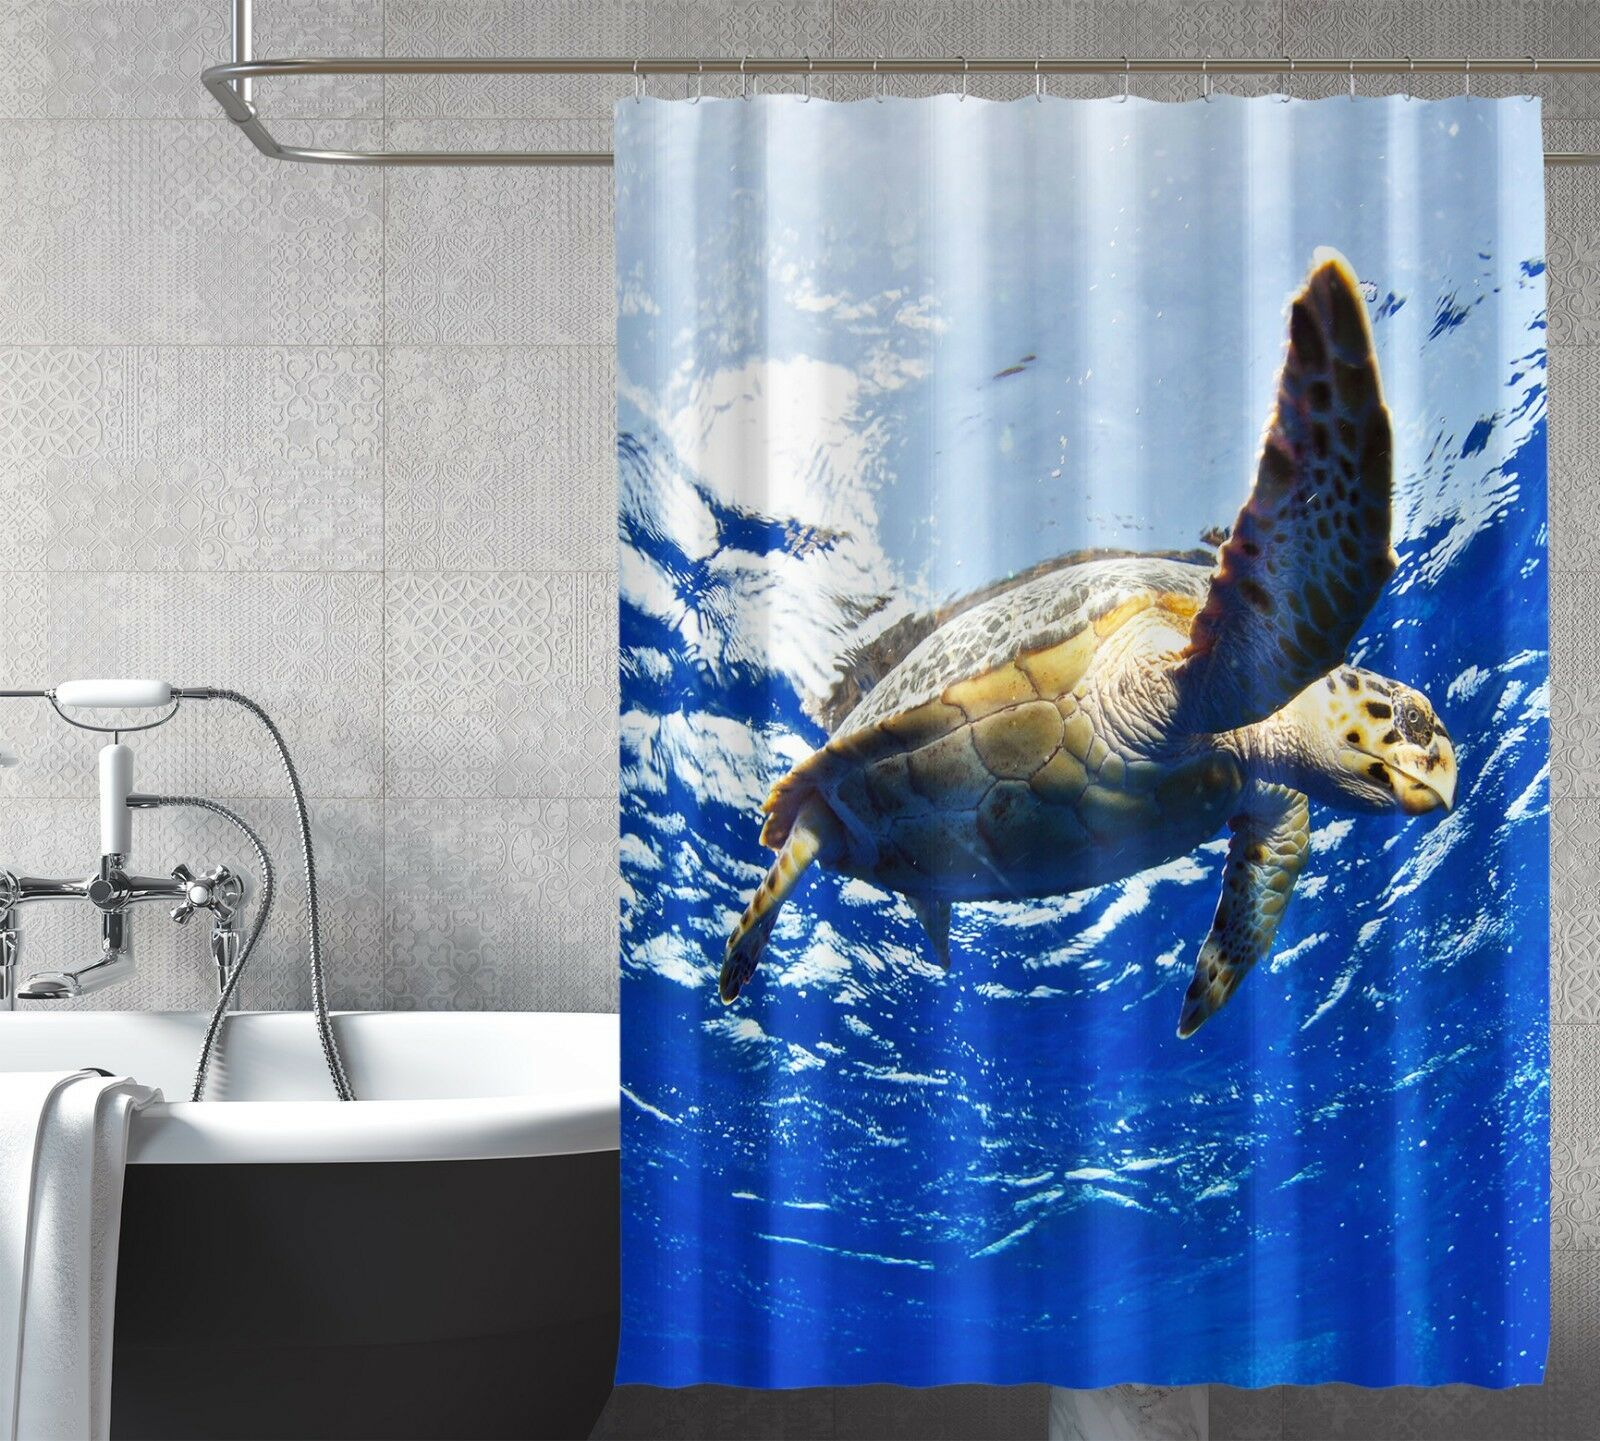 3D Turtle Ocean 89 Shower Curtain Waterproof Fiber Bathroom Home Windows Toilet